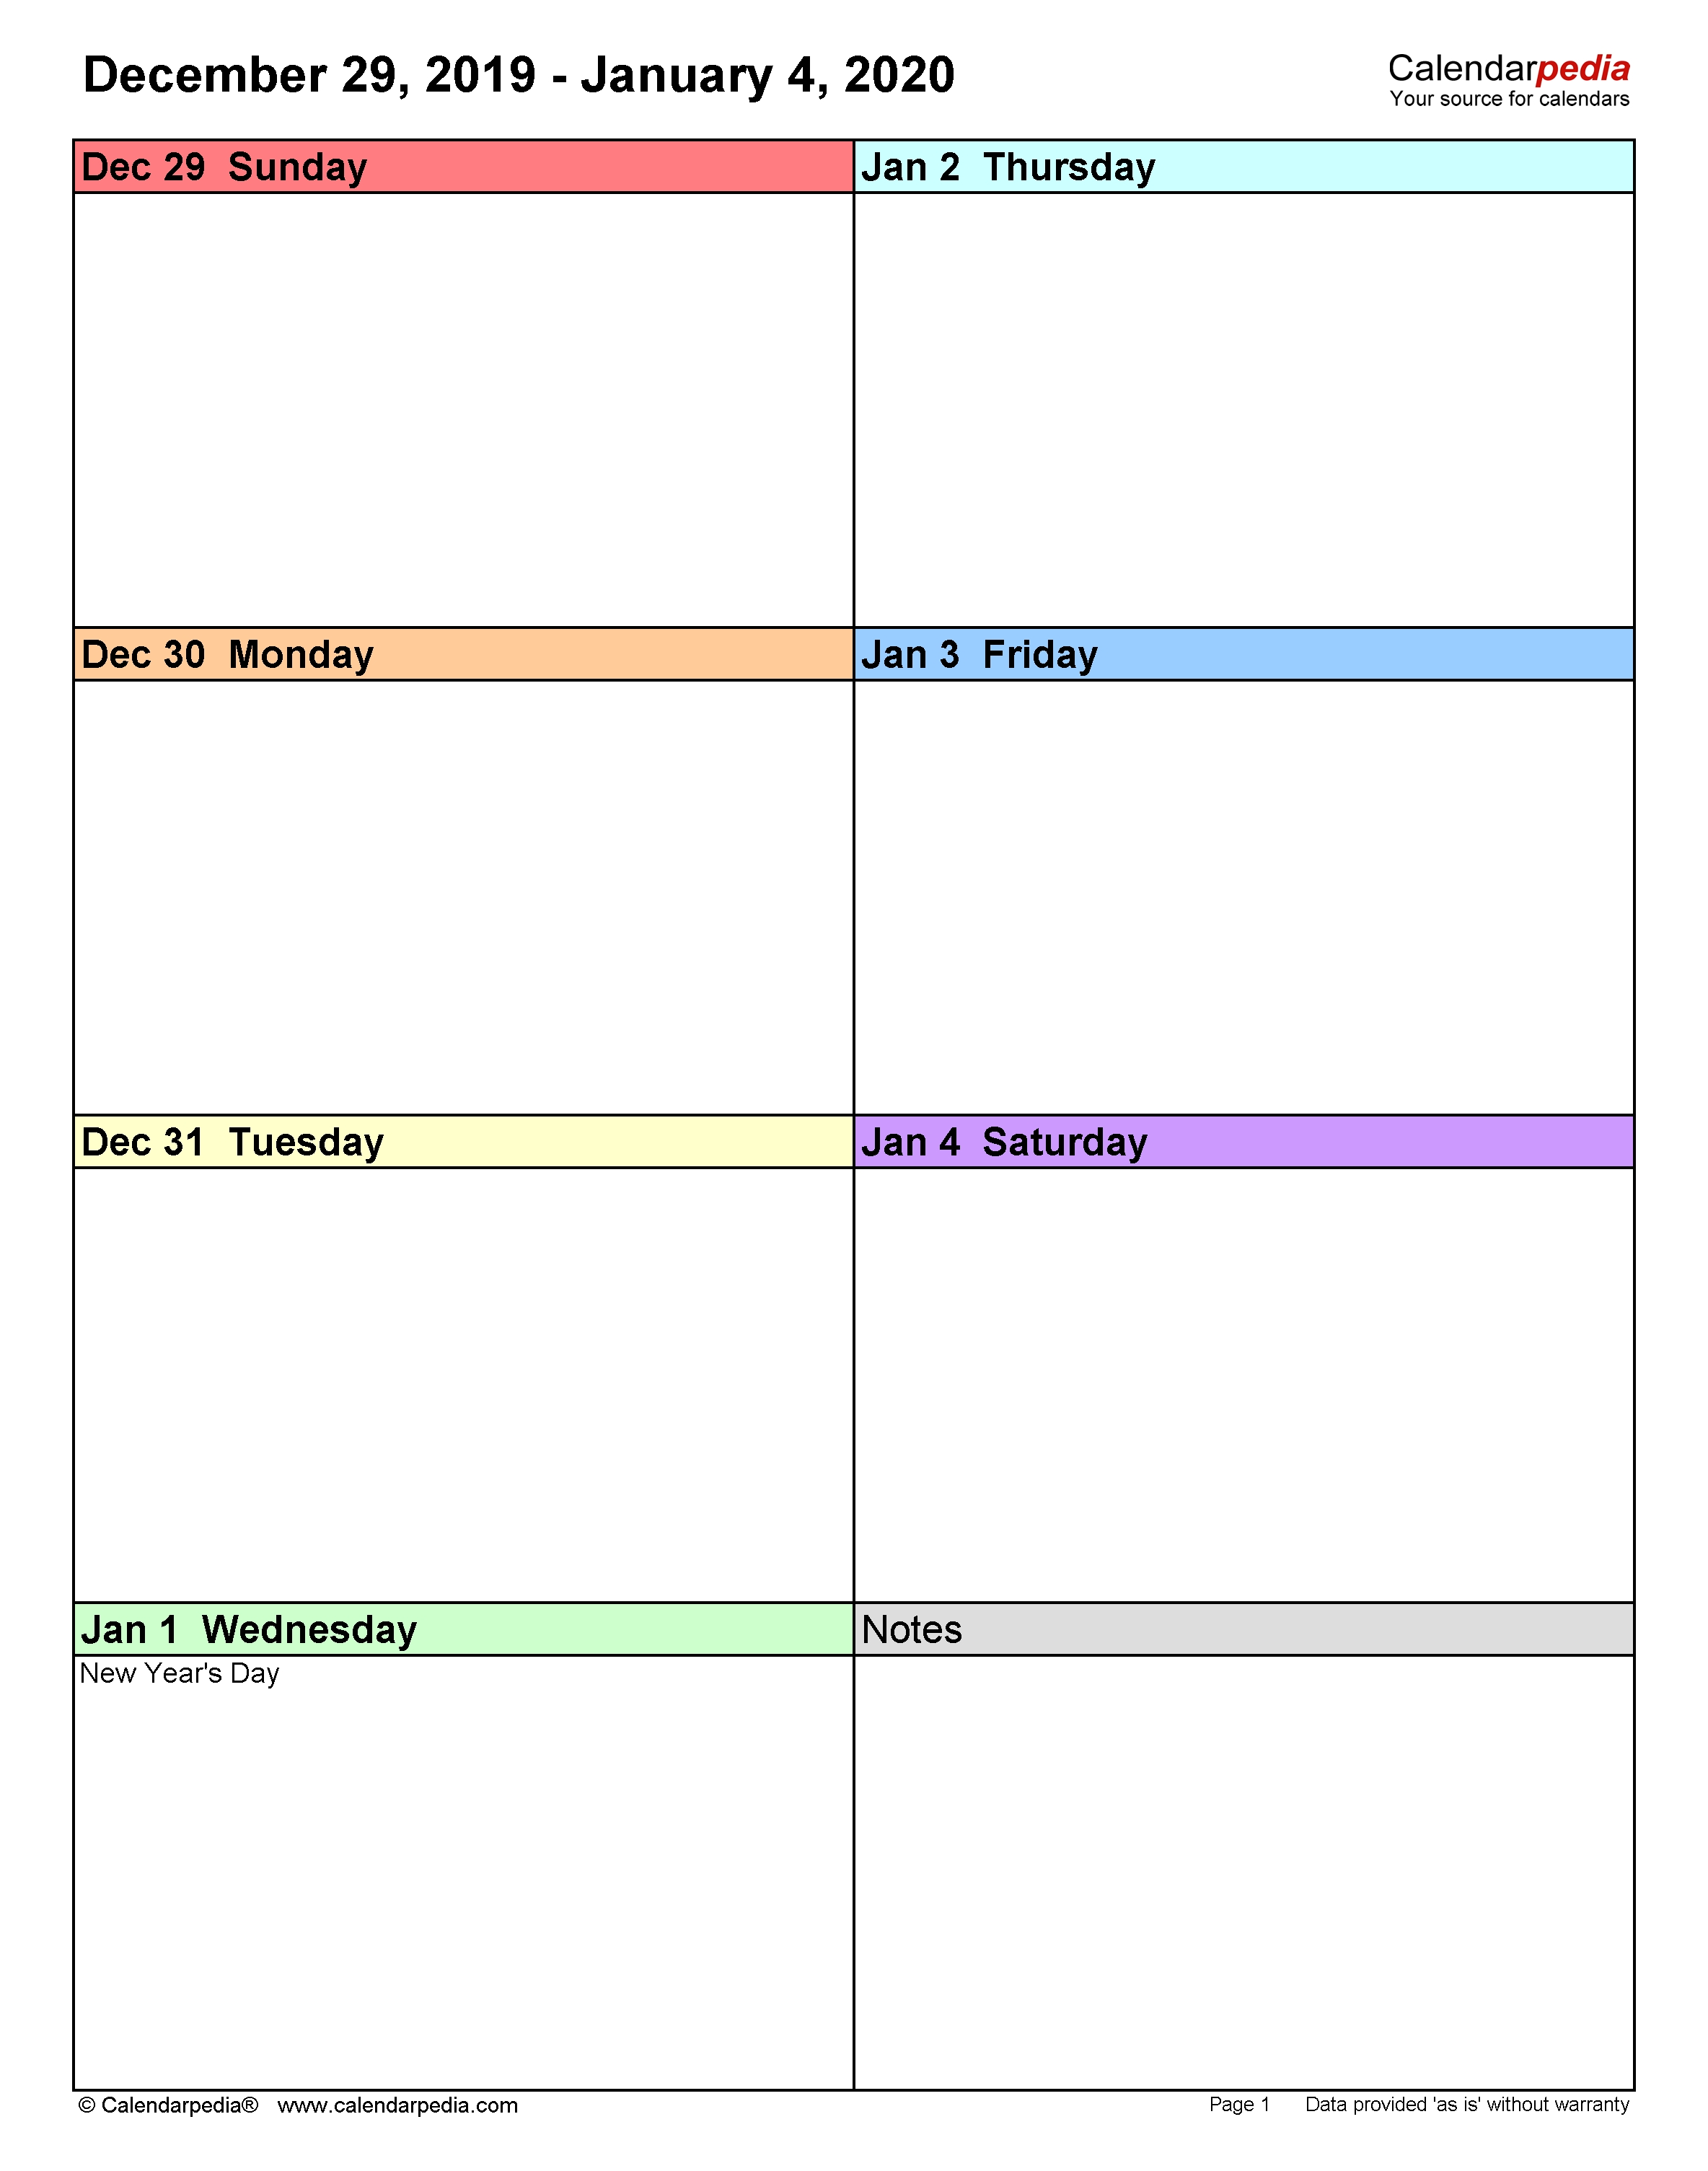 Weekly Calendars 2020 For Word - 12 Free Printable Templates 9 Day Calendar Template